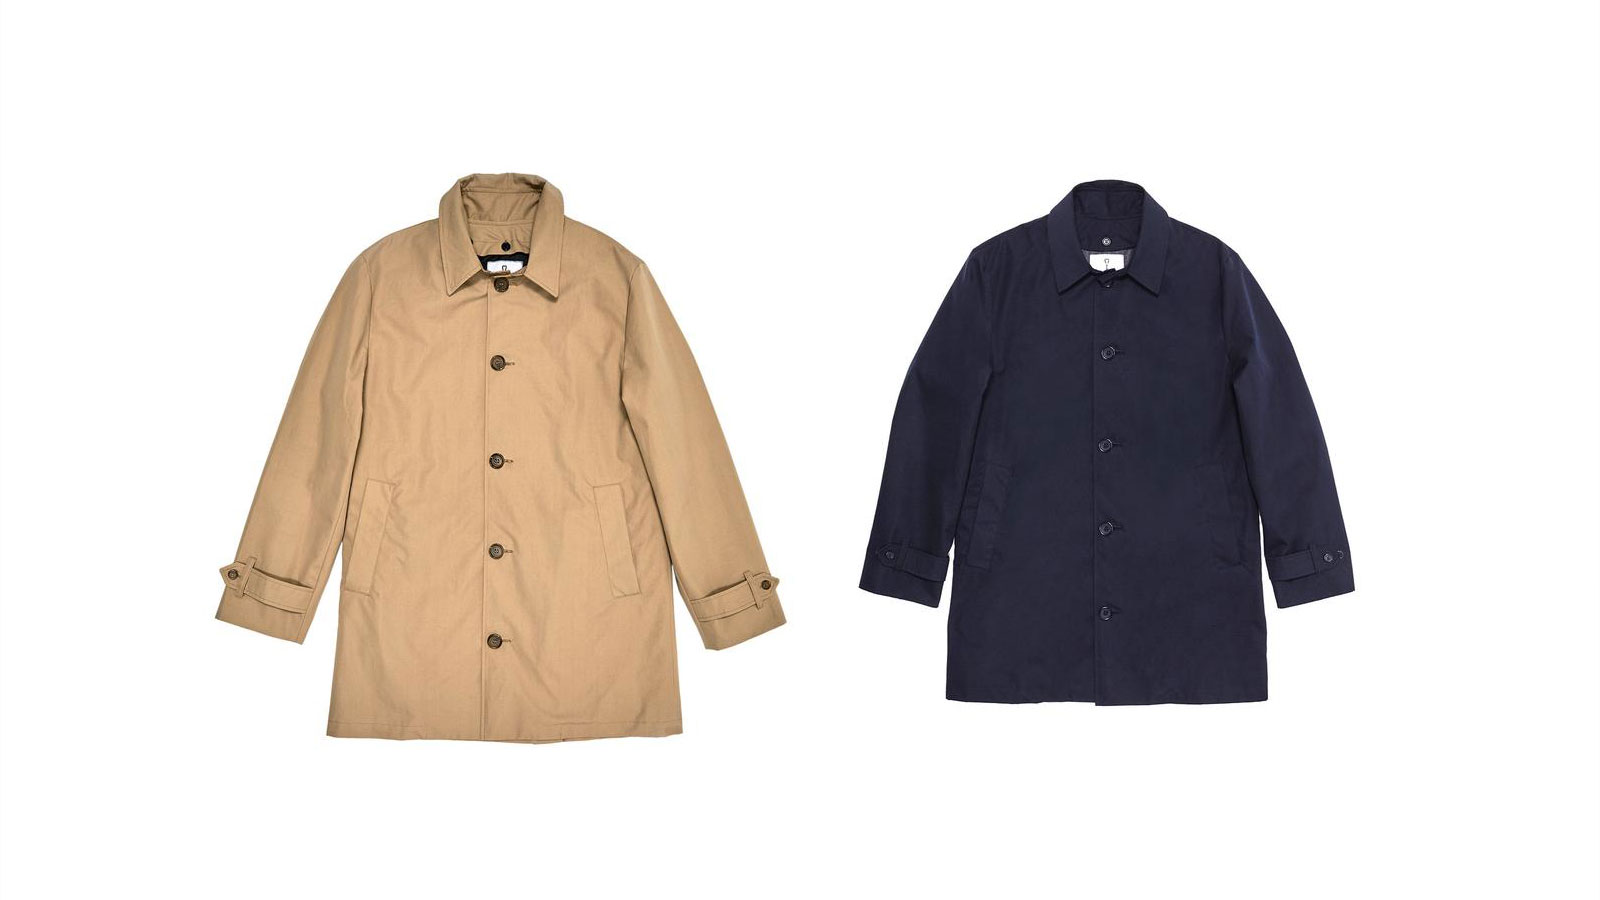 >American Trench Mens Trench Coat   The Best Men's Trench Coats